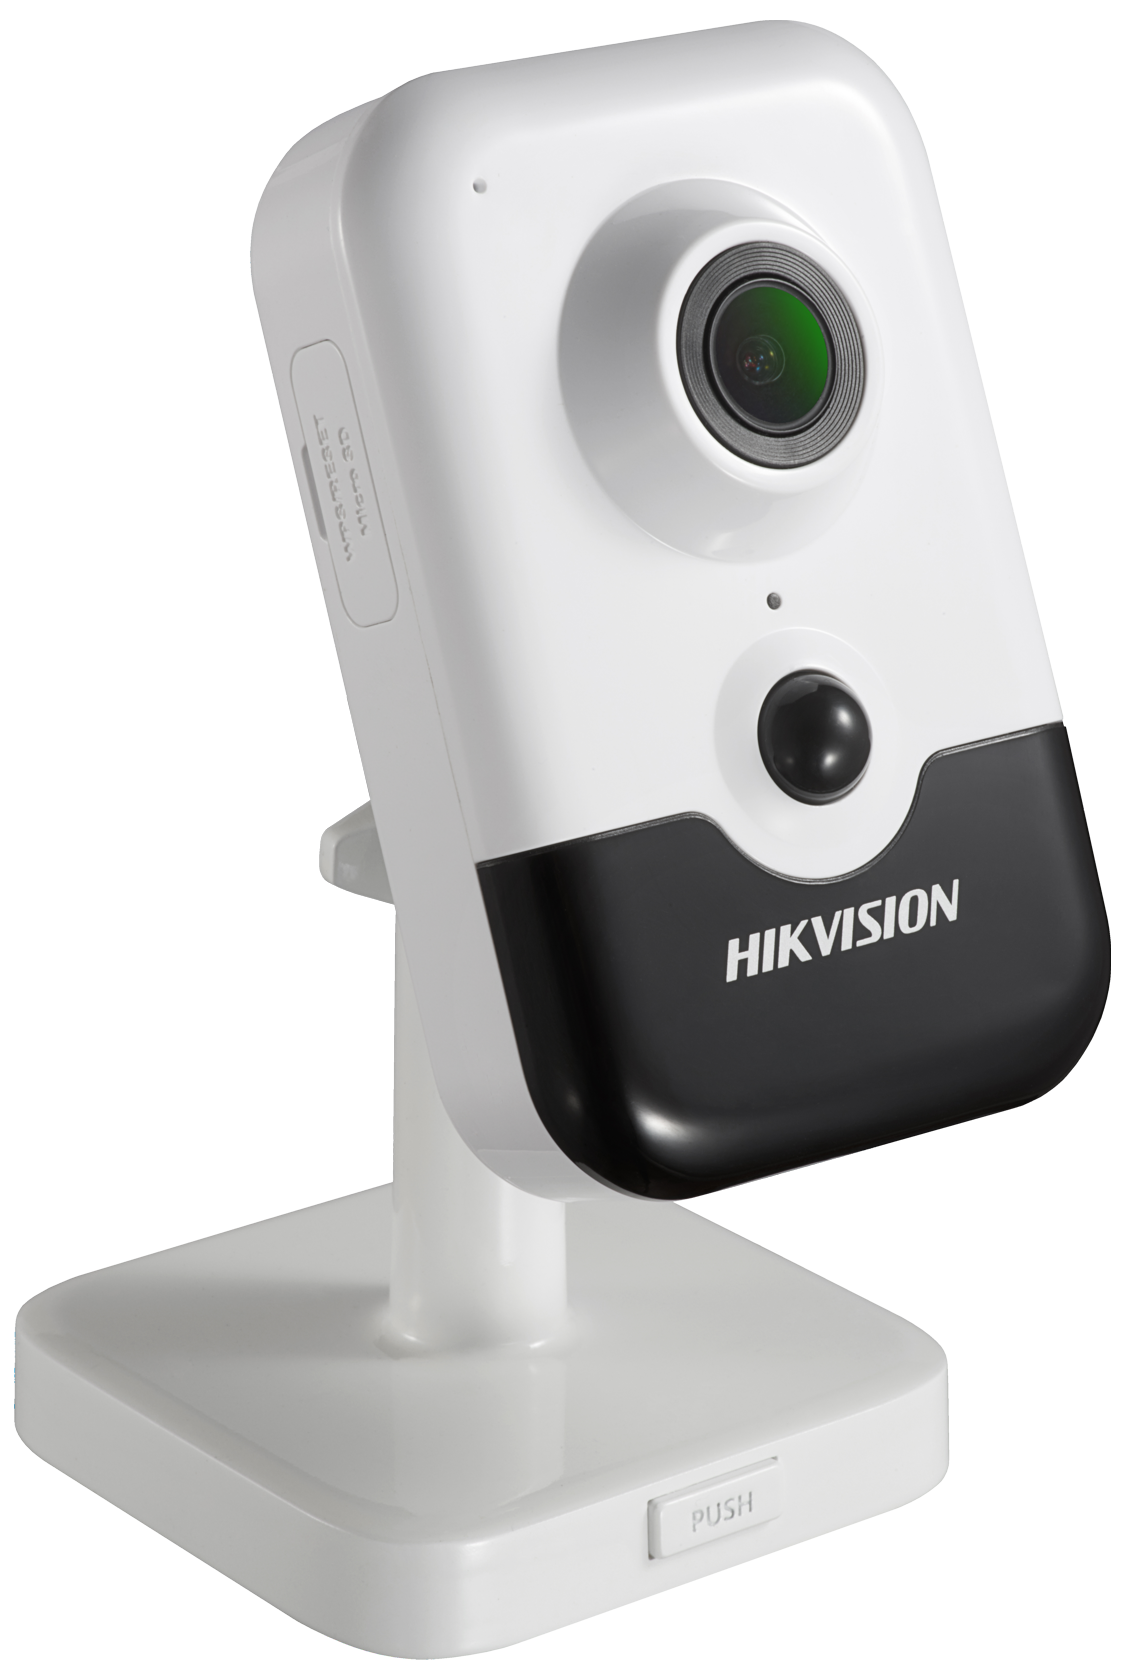 Hikvision DS-2CD2463G0-IW 6MP WIFI Mic Speaker PIR SD-Card 10M IR POE Cube Network IP Security Camera 2.8MM